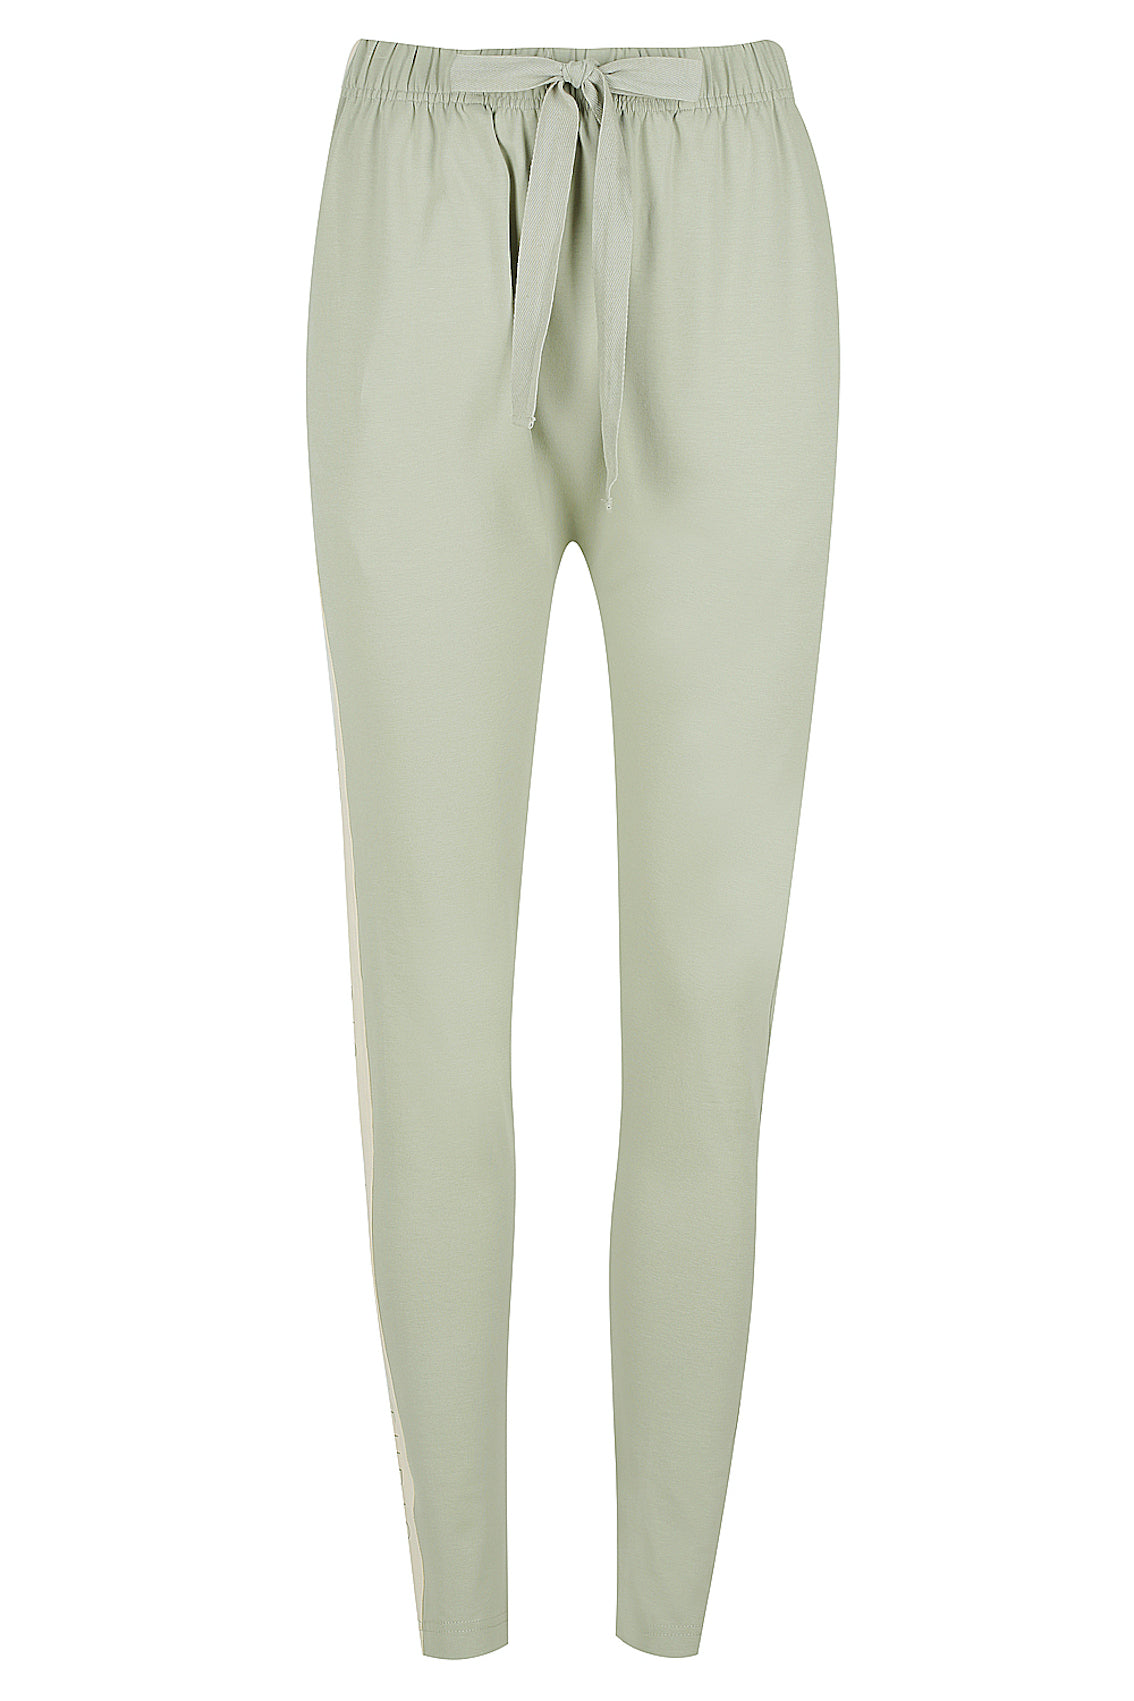 Colour Block Slouch Pant - sage / stone